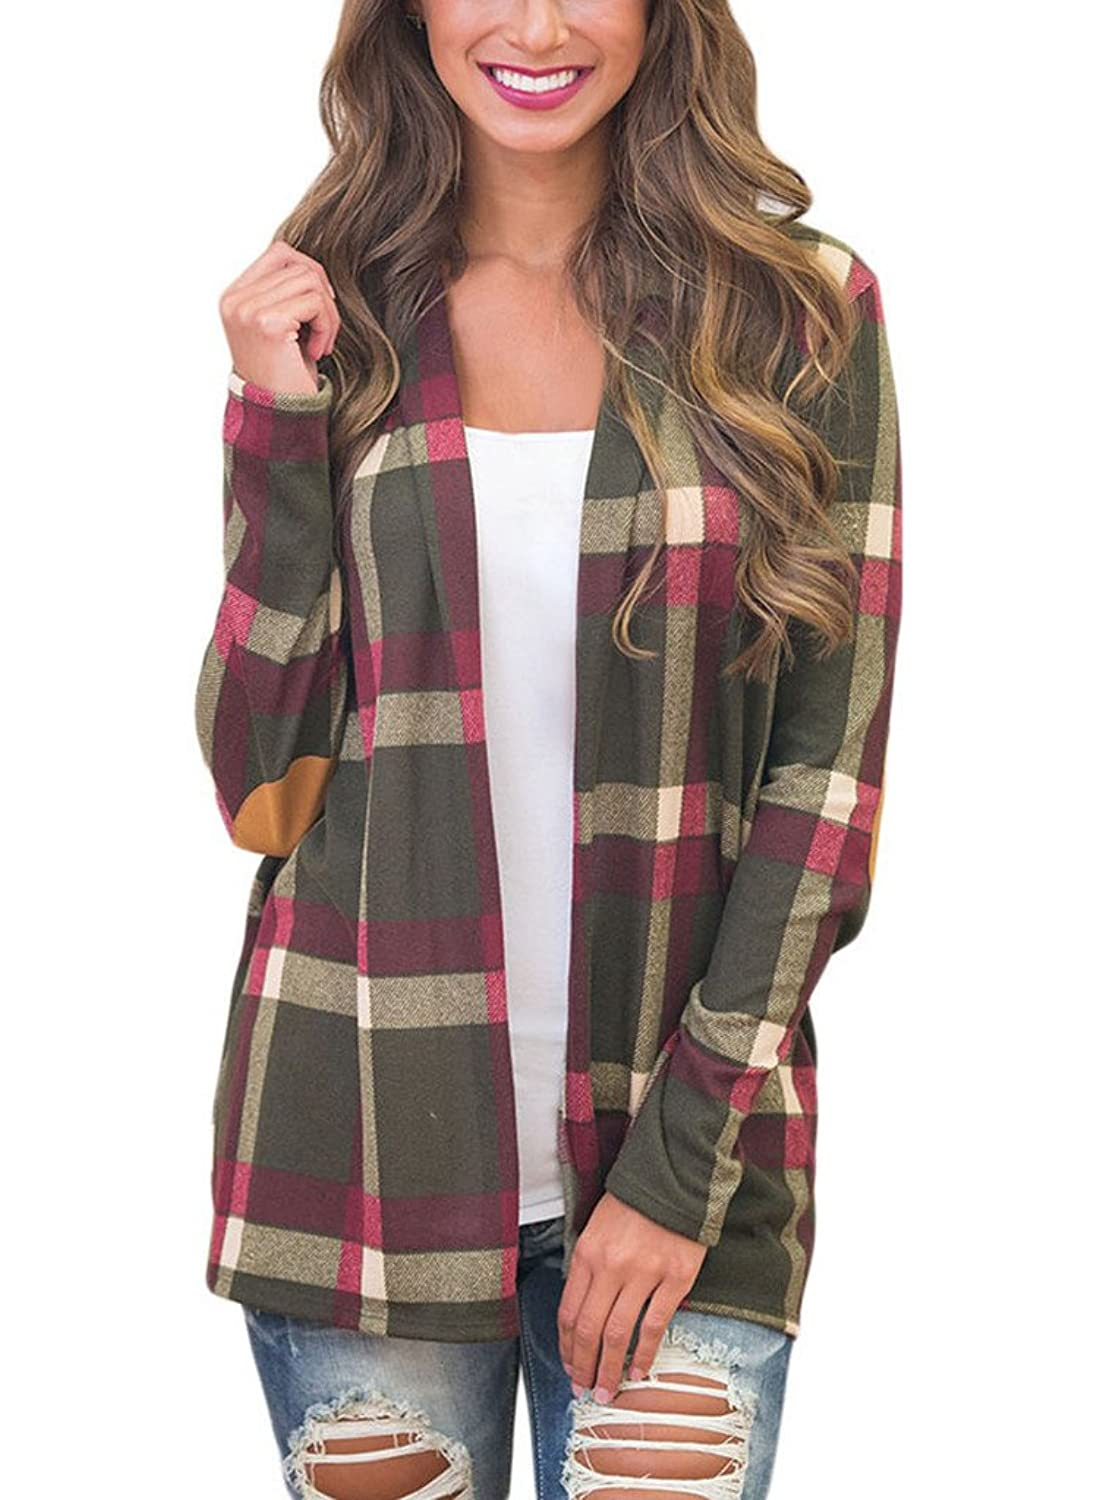 ROSKIKI Women's Long Sleeve Elbow Patch Open Front Buttonless Casual Plaid Kimono Cardigan